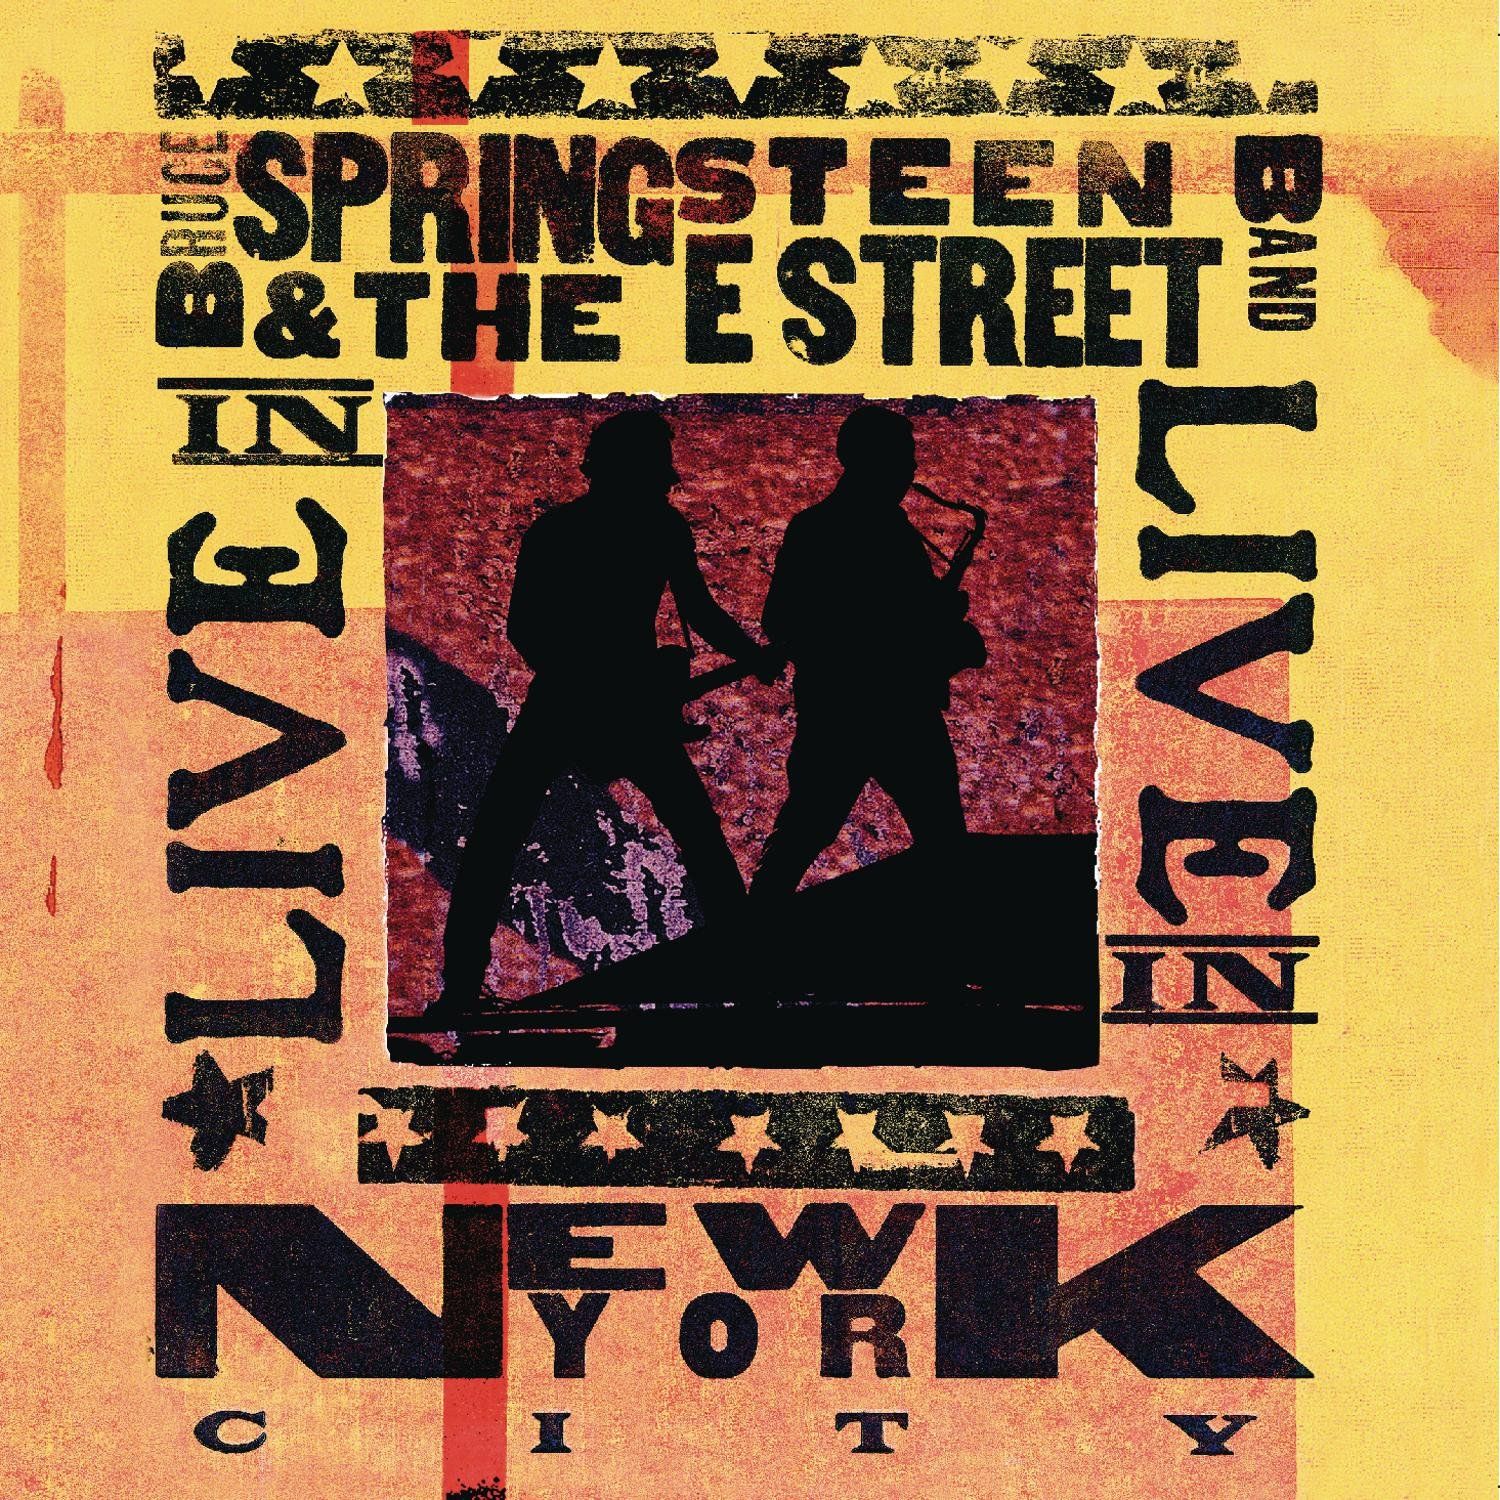 Bruce Springsteen & the E Street Band: Live in New York City by Columbia